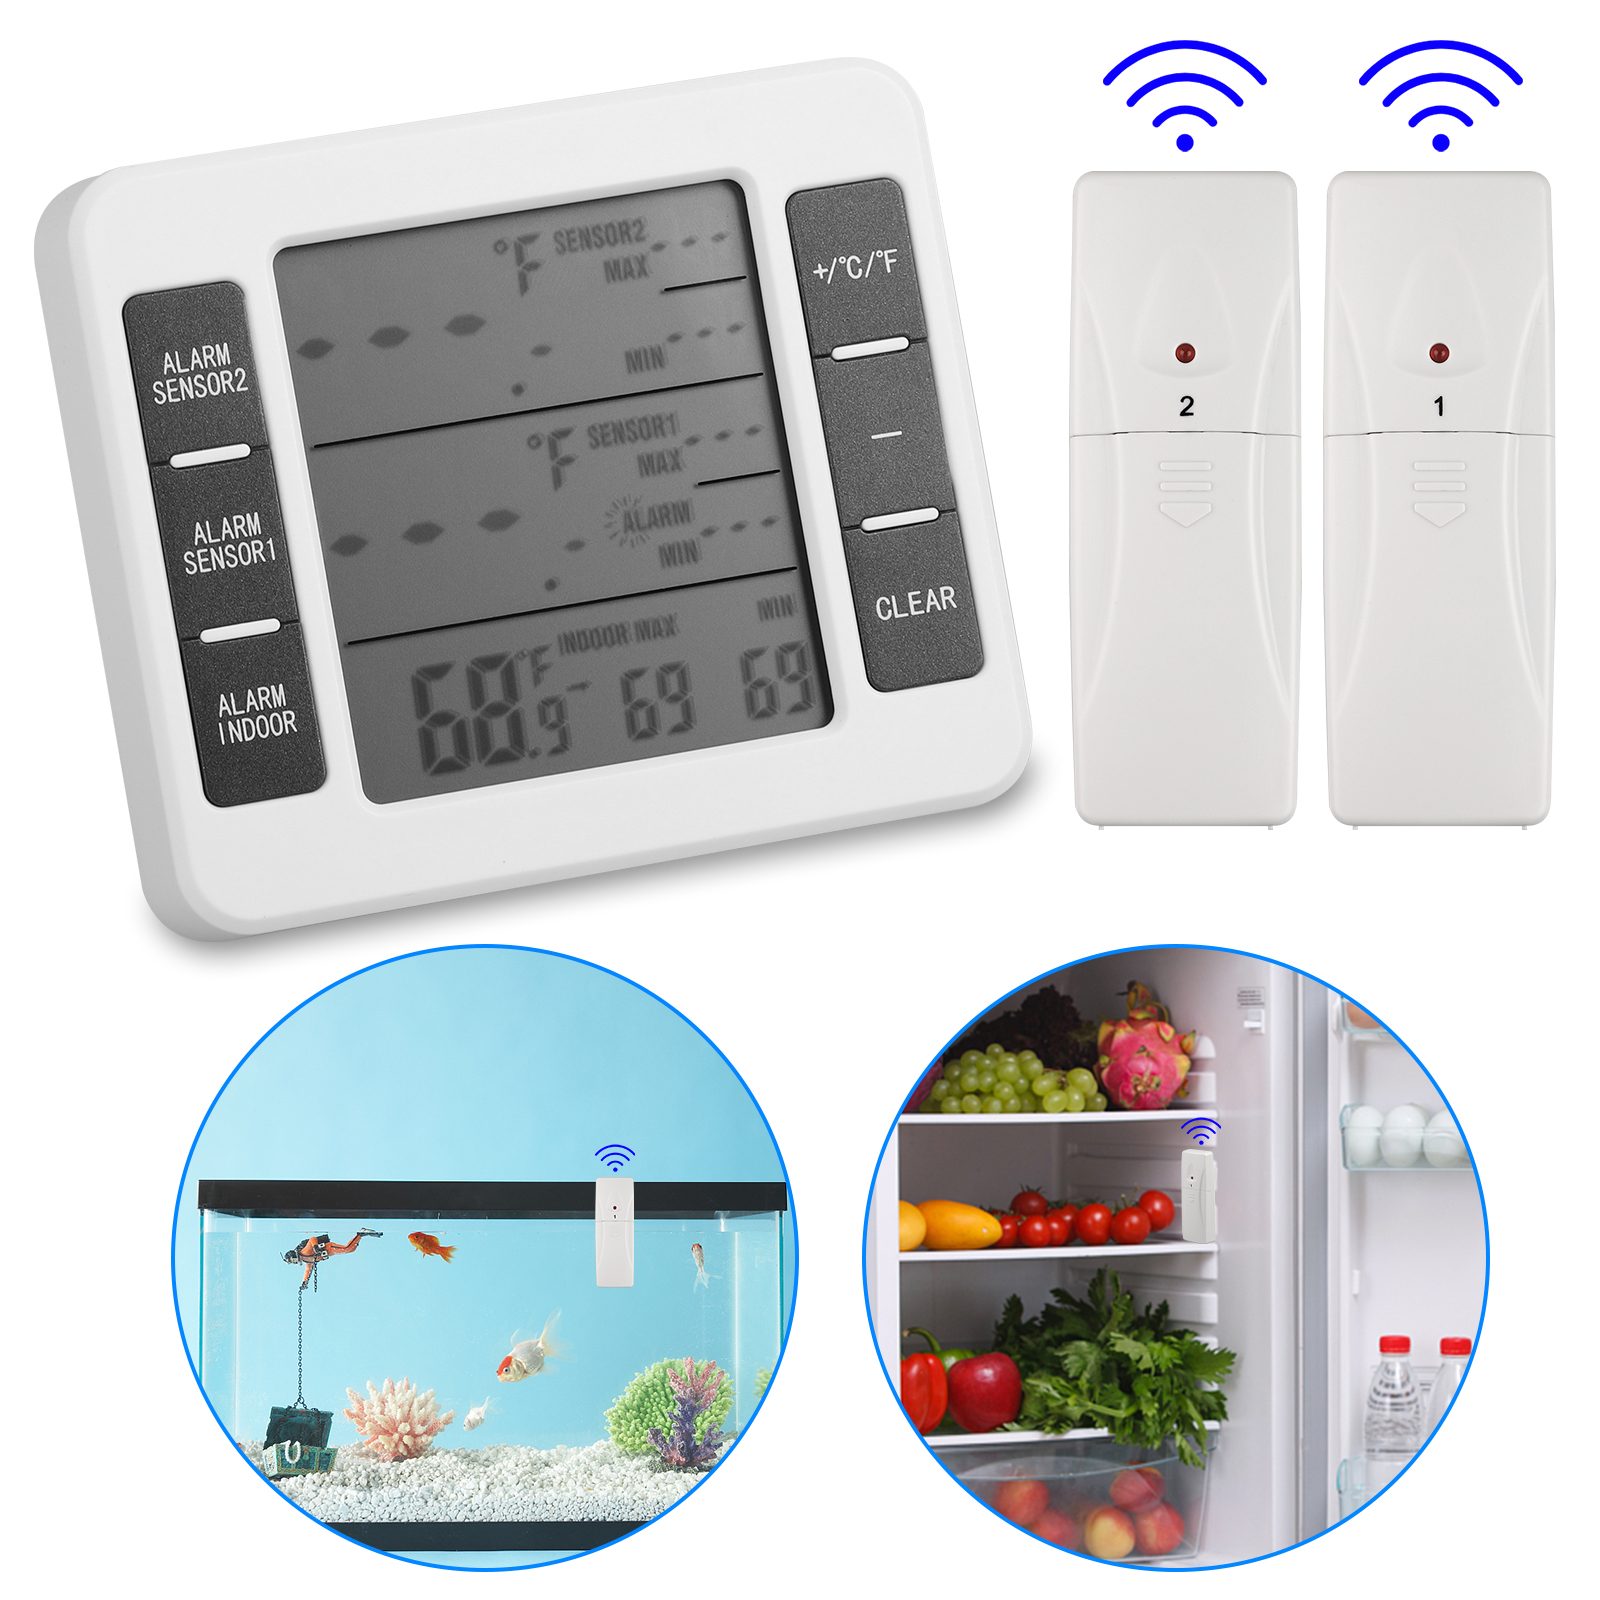 Thermo-Simple 2 Walk in Cooler Refrigeration Temperature Indicator /& Alarm Kit